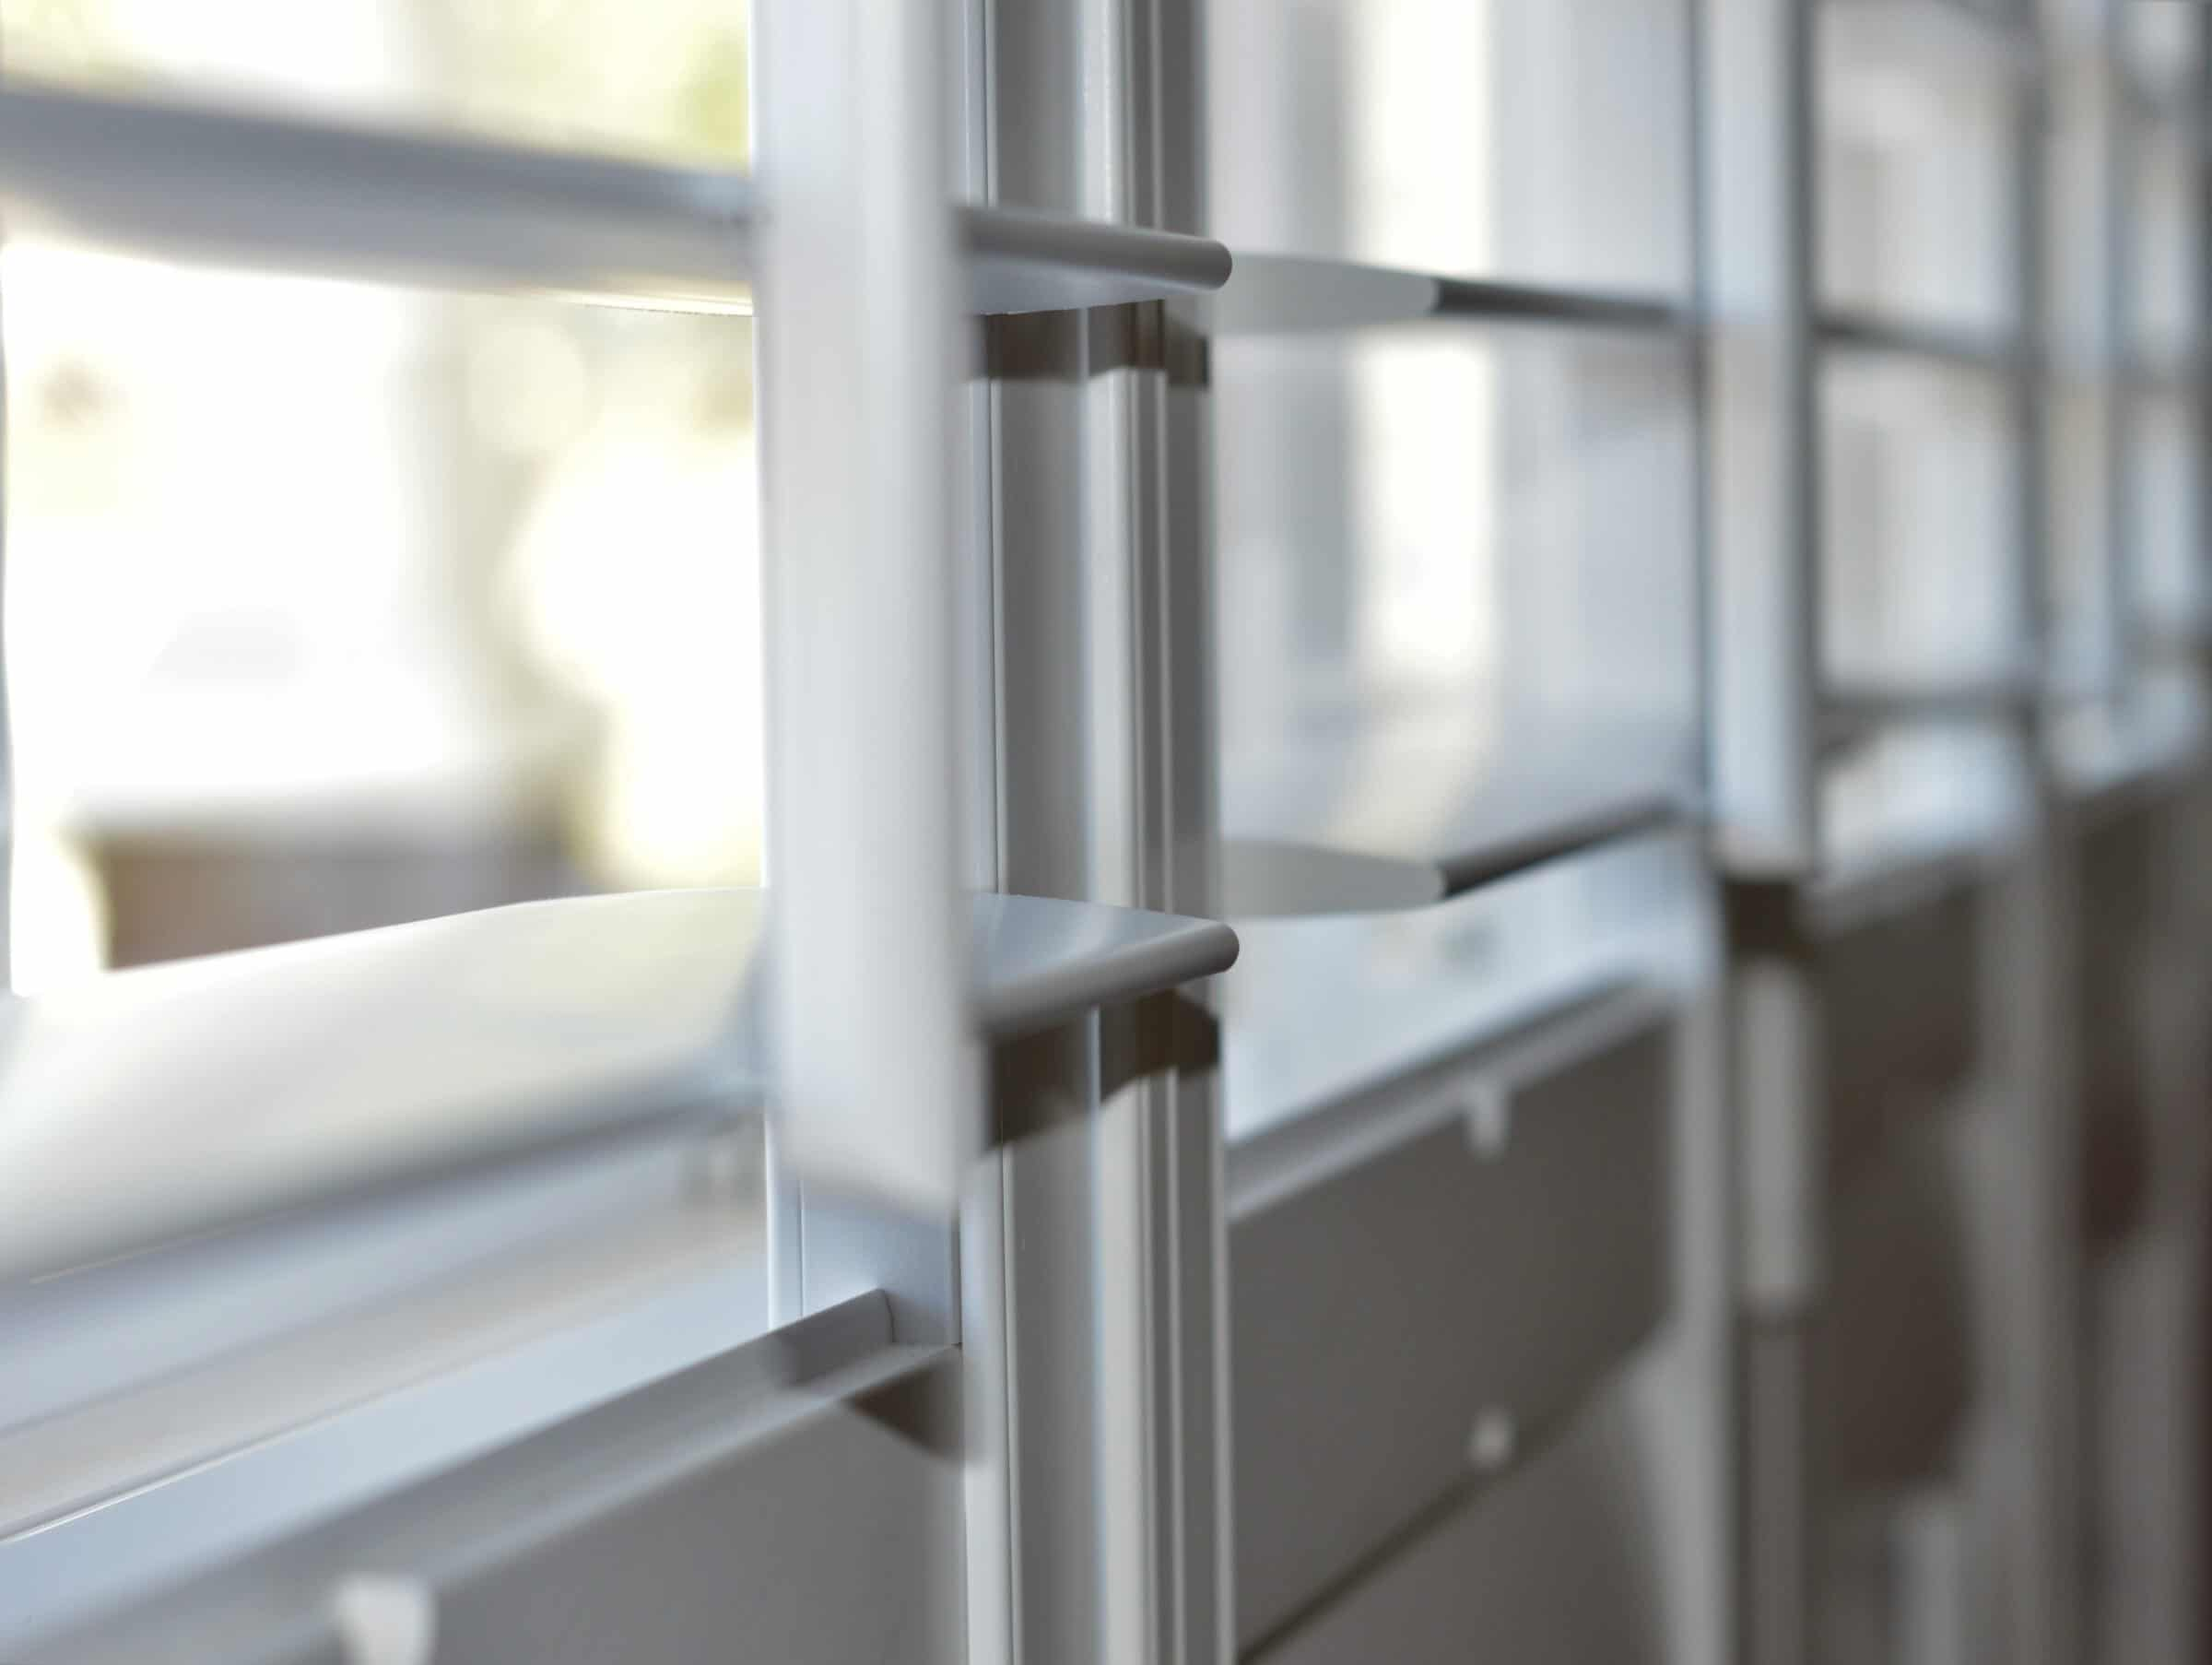 Let Shutters Quickly help you find the perfect window treatments for your home